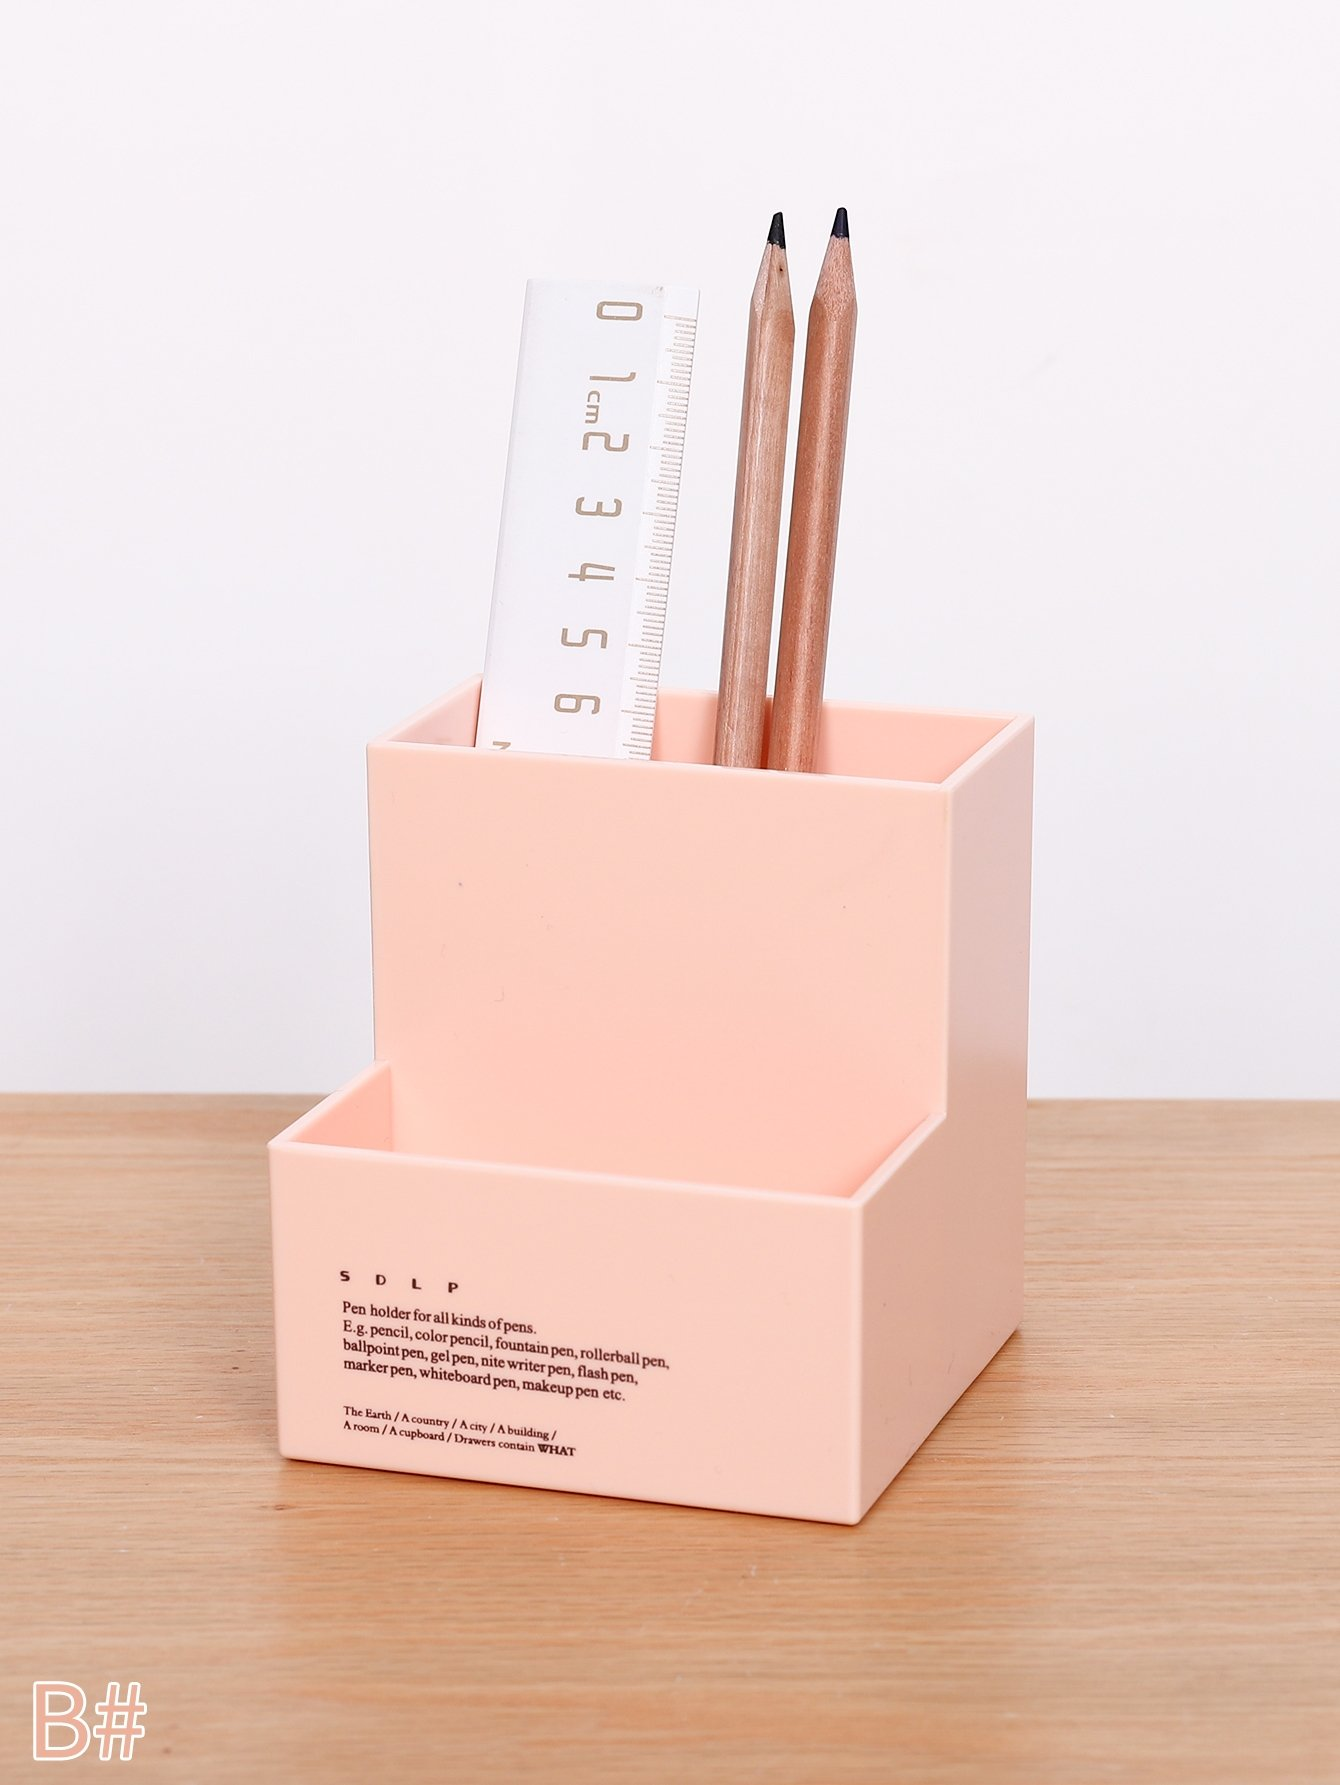 Multi Purpose Pen Holder 1pc